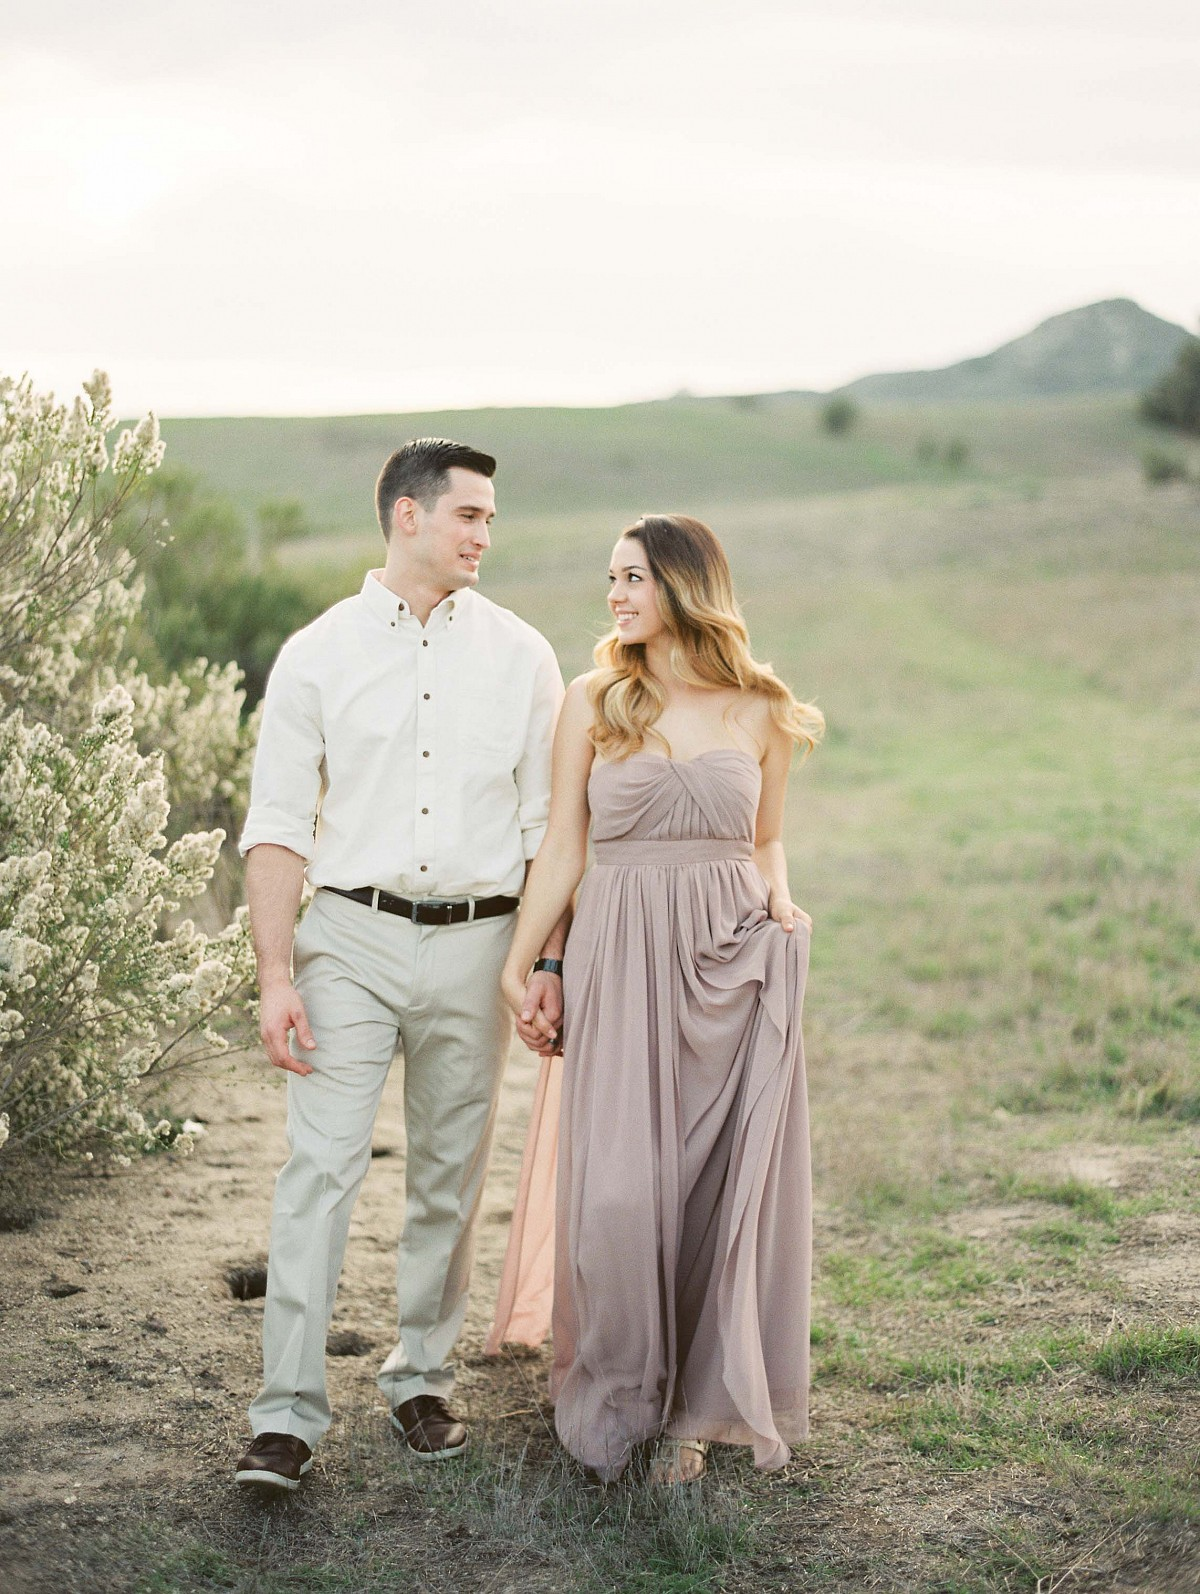 Cozy Engagement Session in Neutral Colors